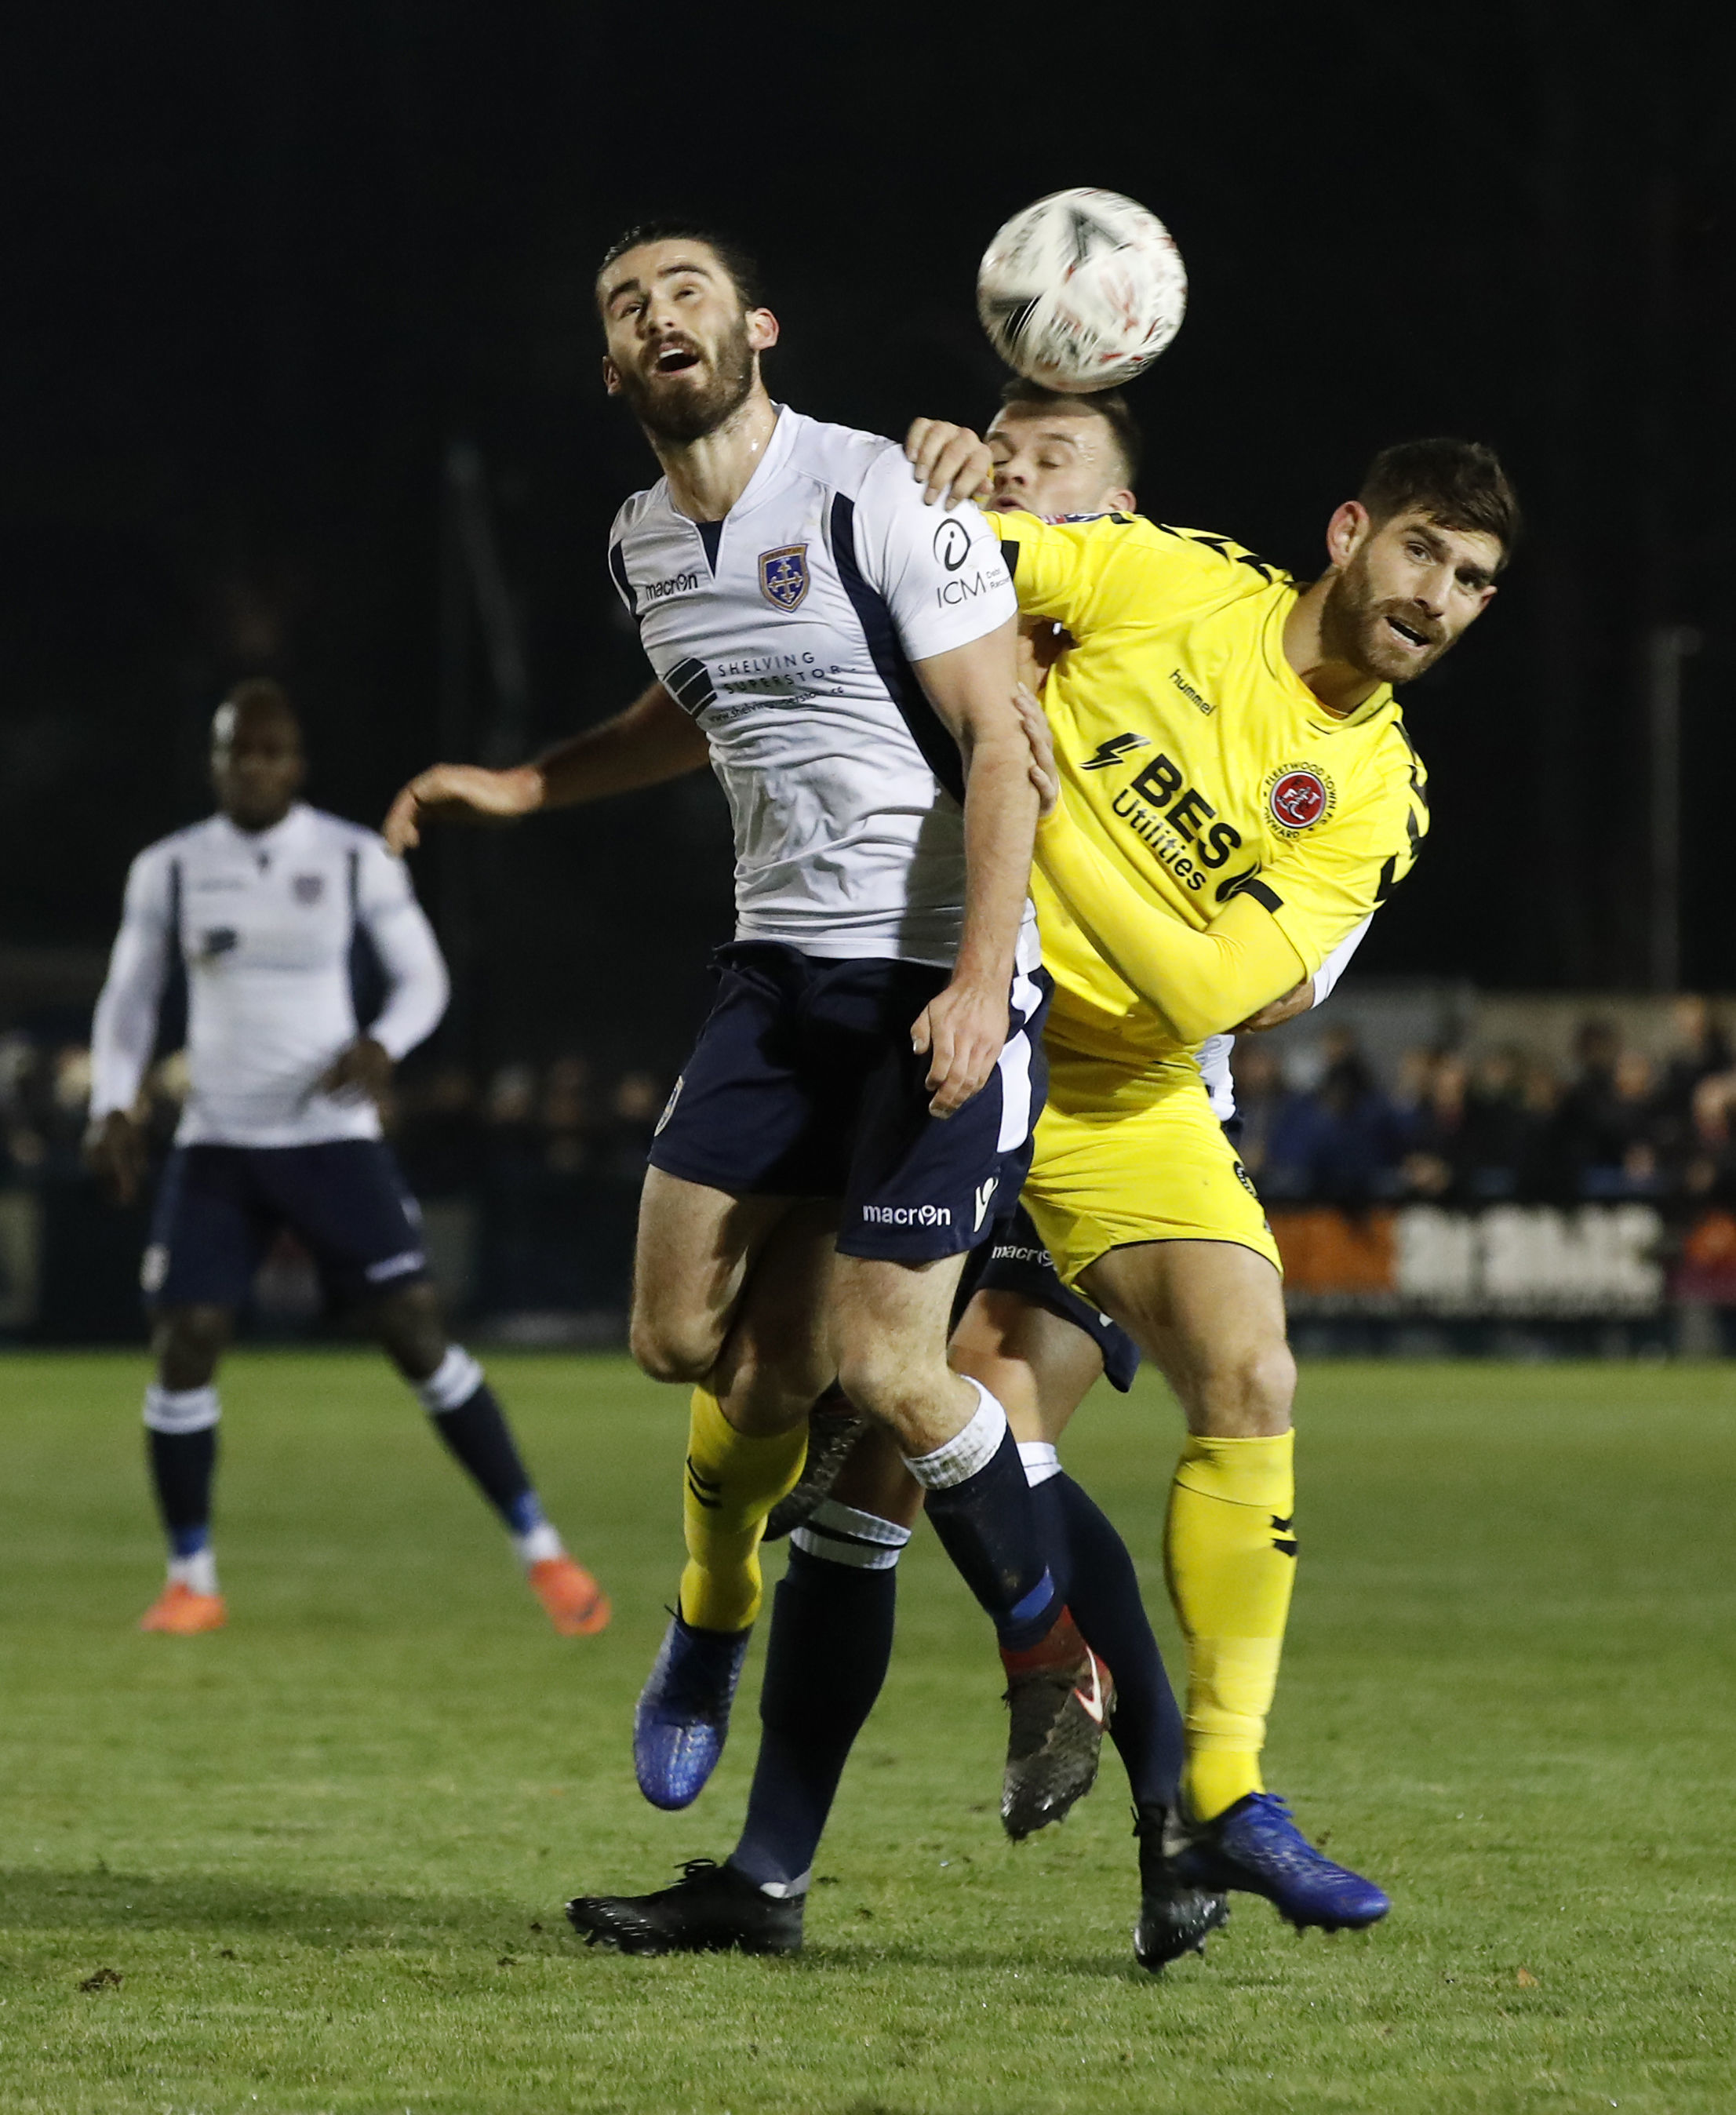 Guiseley's Alex Purver and Fleetwood Town's Ched Evans, right, battle for the ball during the FA Cup second round clash between the two sides. Picture: Martin Rickett/PA Wire